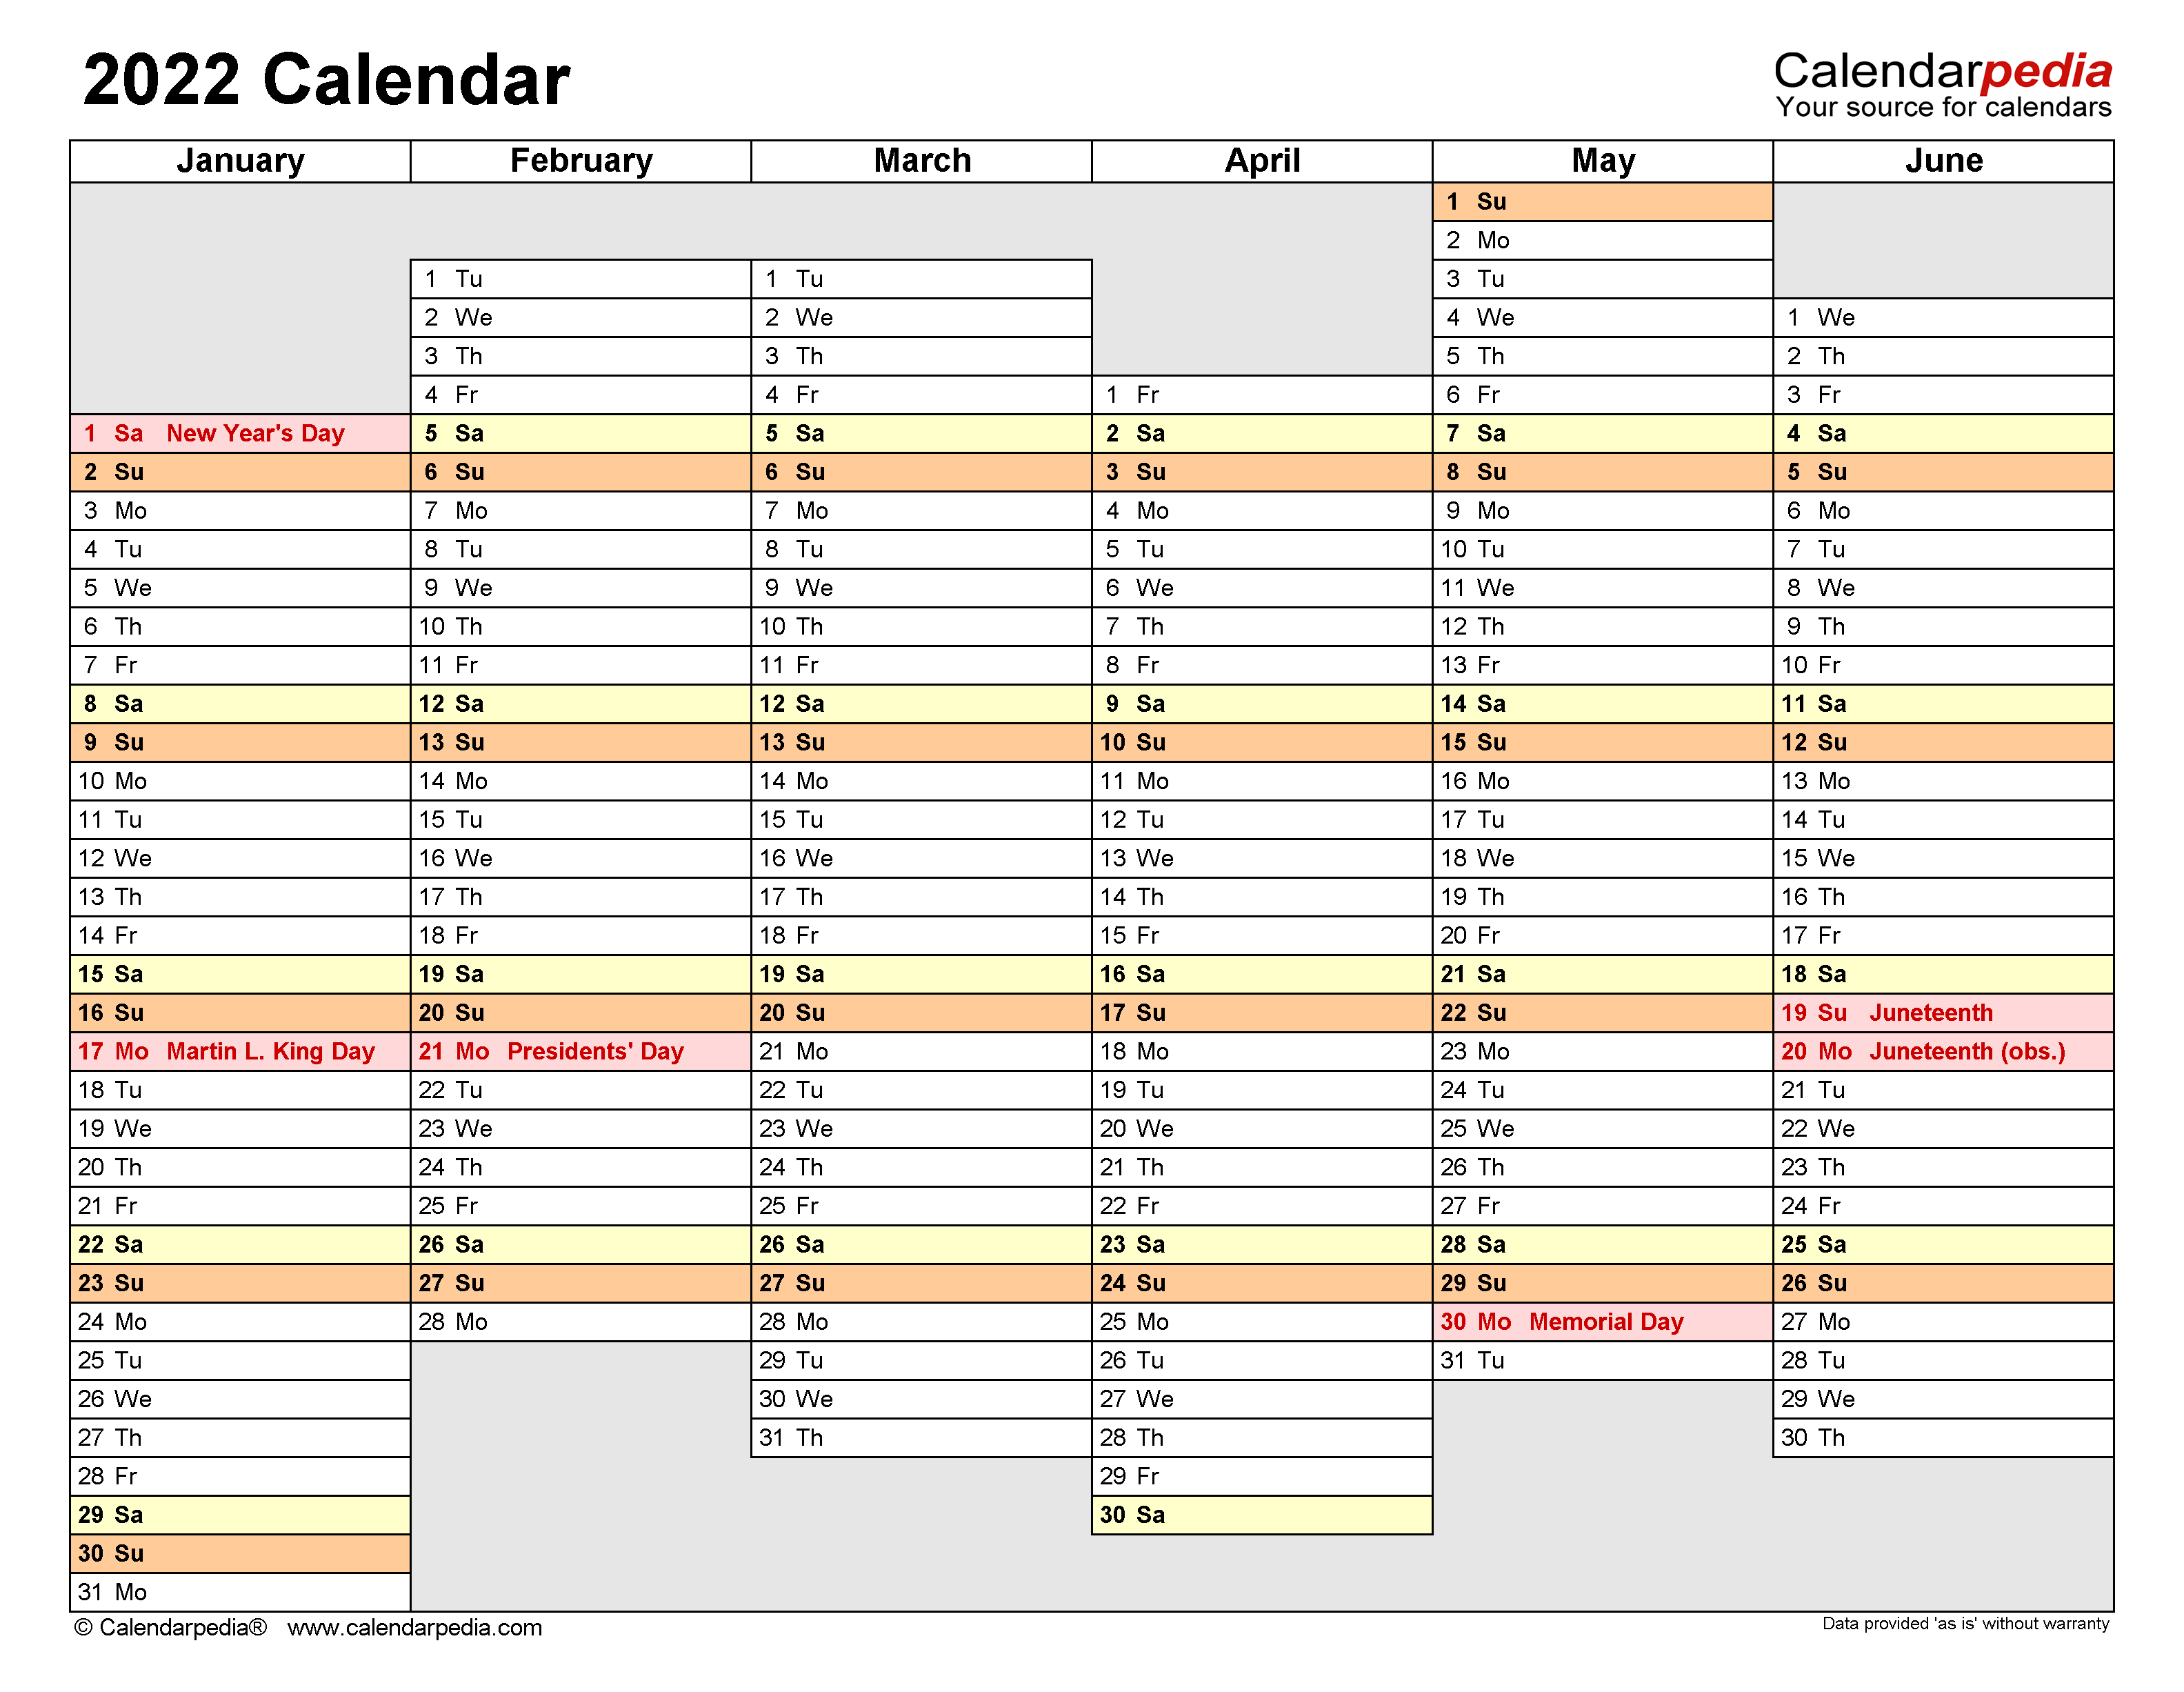 It has many uses and can be used to plan work strategies that you will implement in the twelve months of the year. 2022 Calendar - Free Printable PDF Templates - Calendarpedia